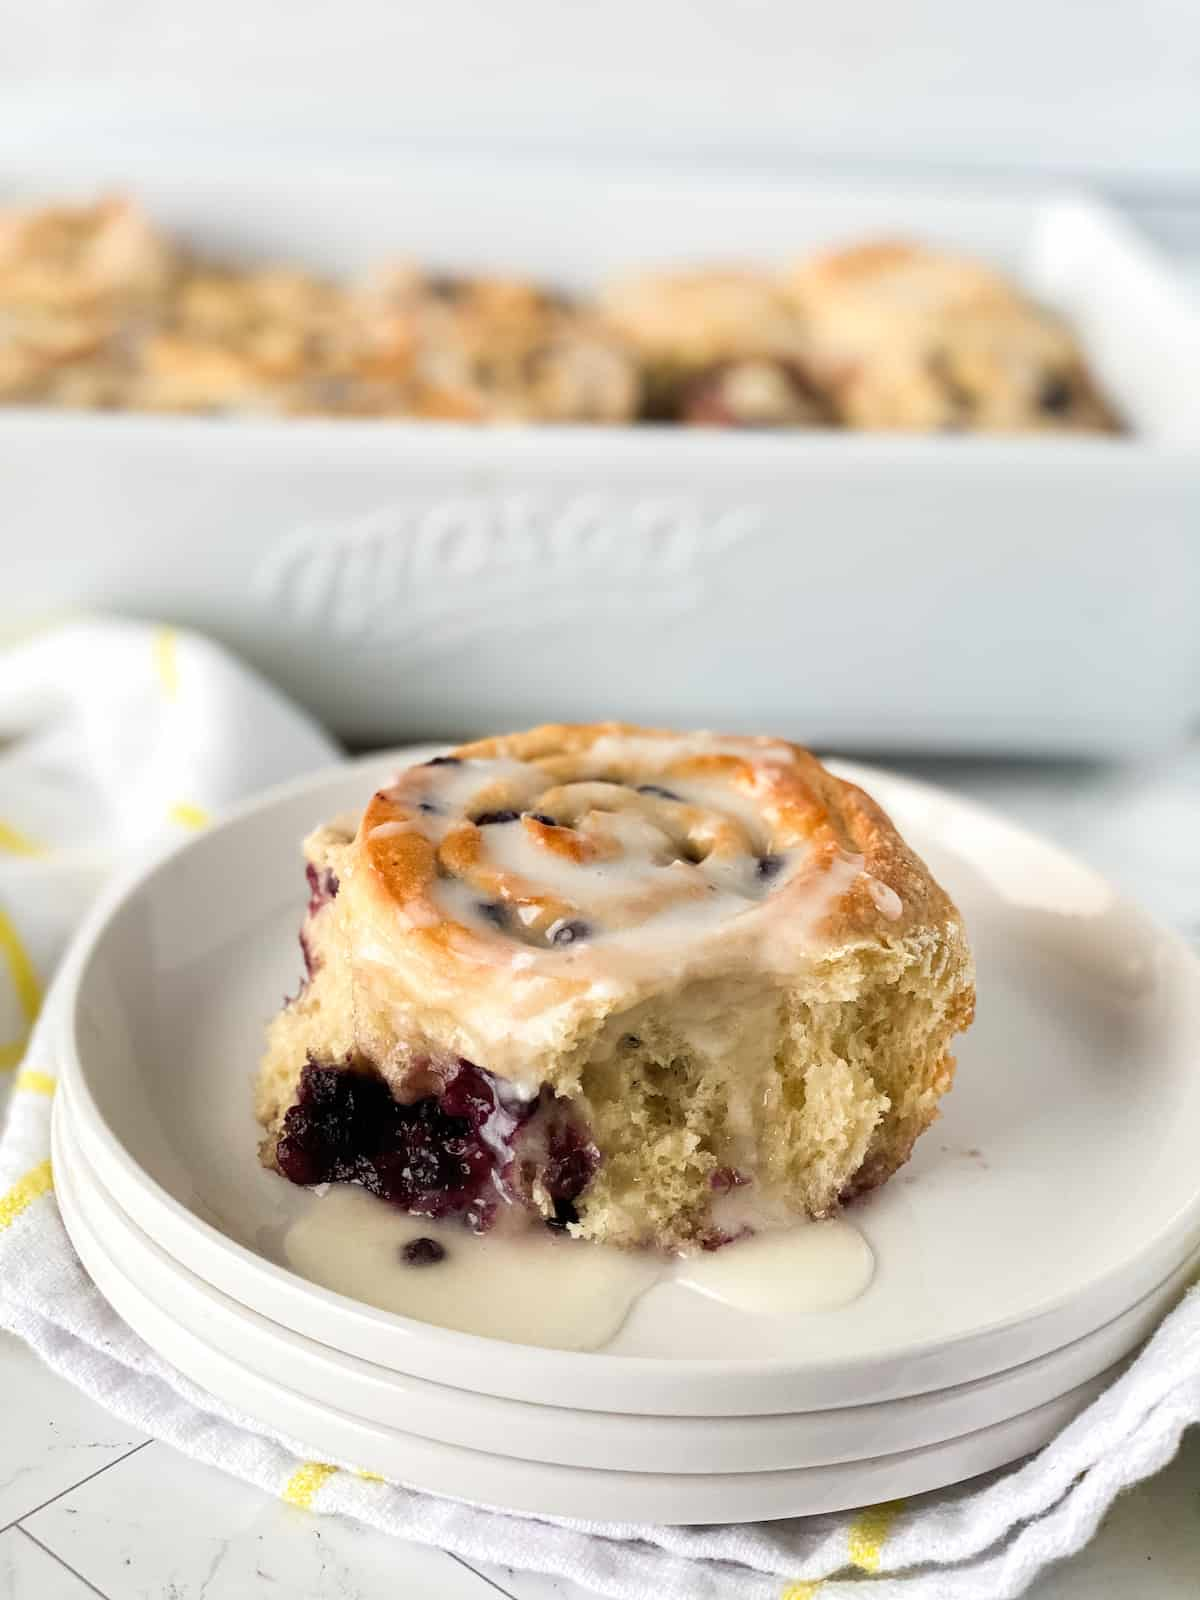 Blueberry sweet buns with white icing on off white plate